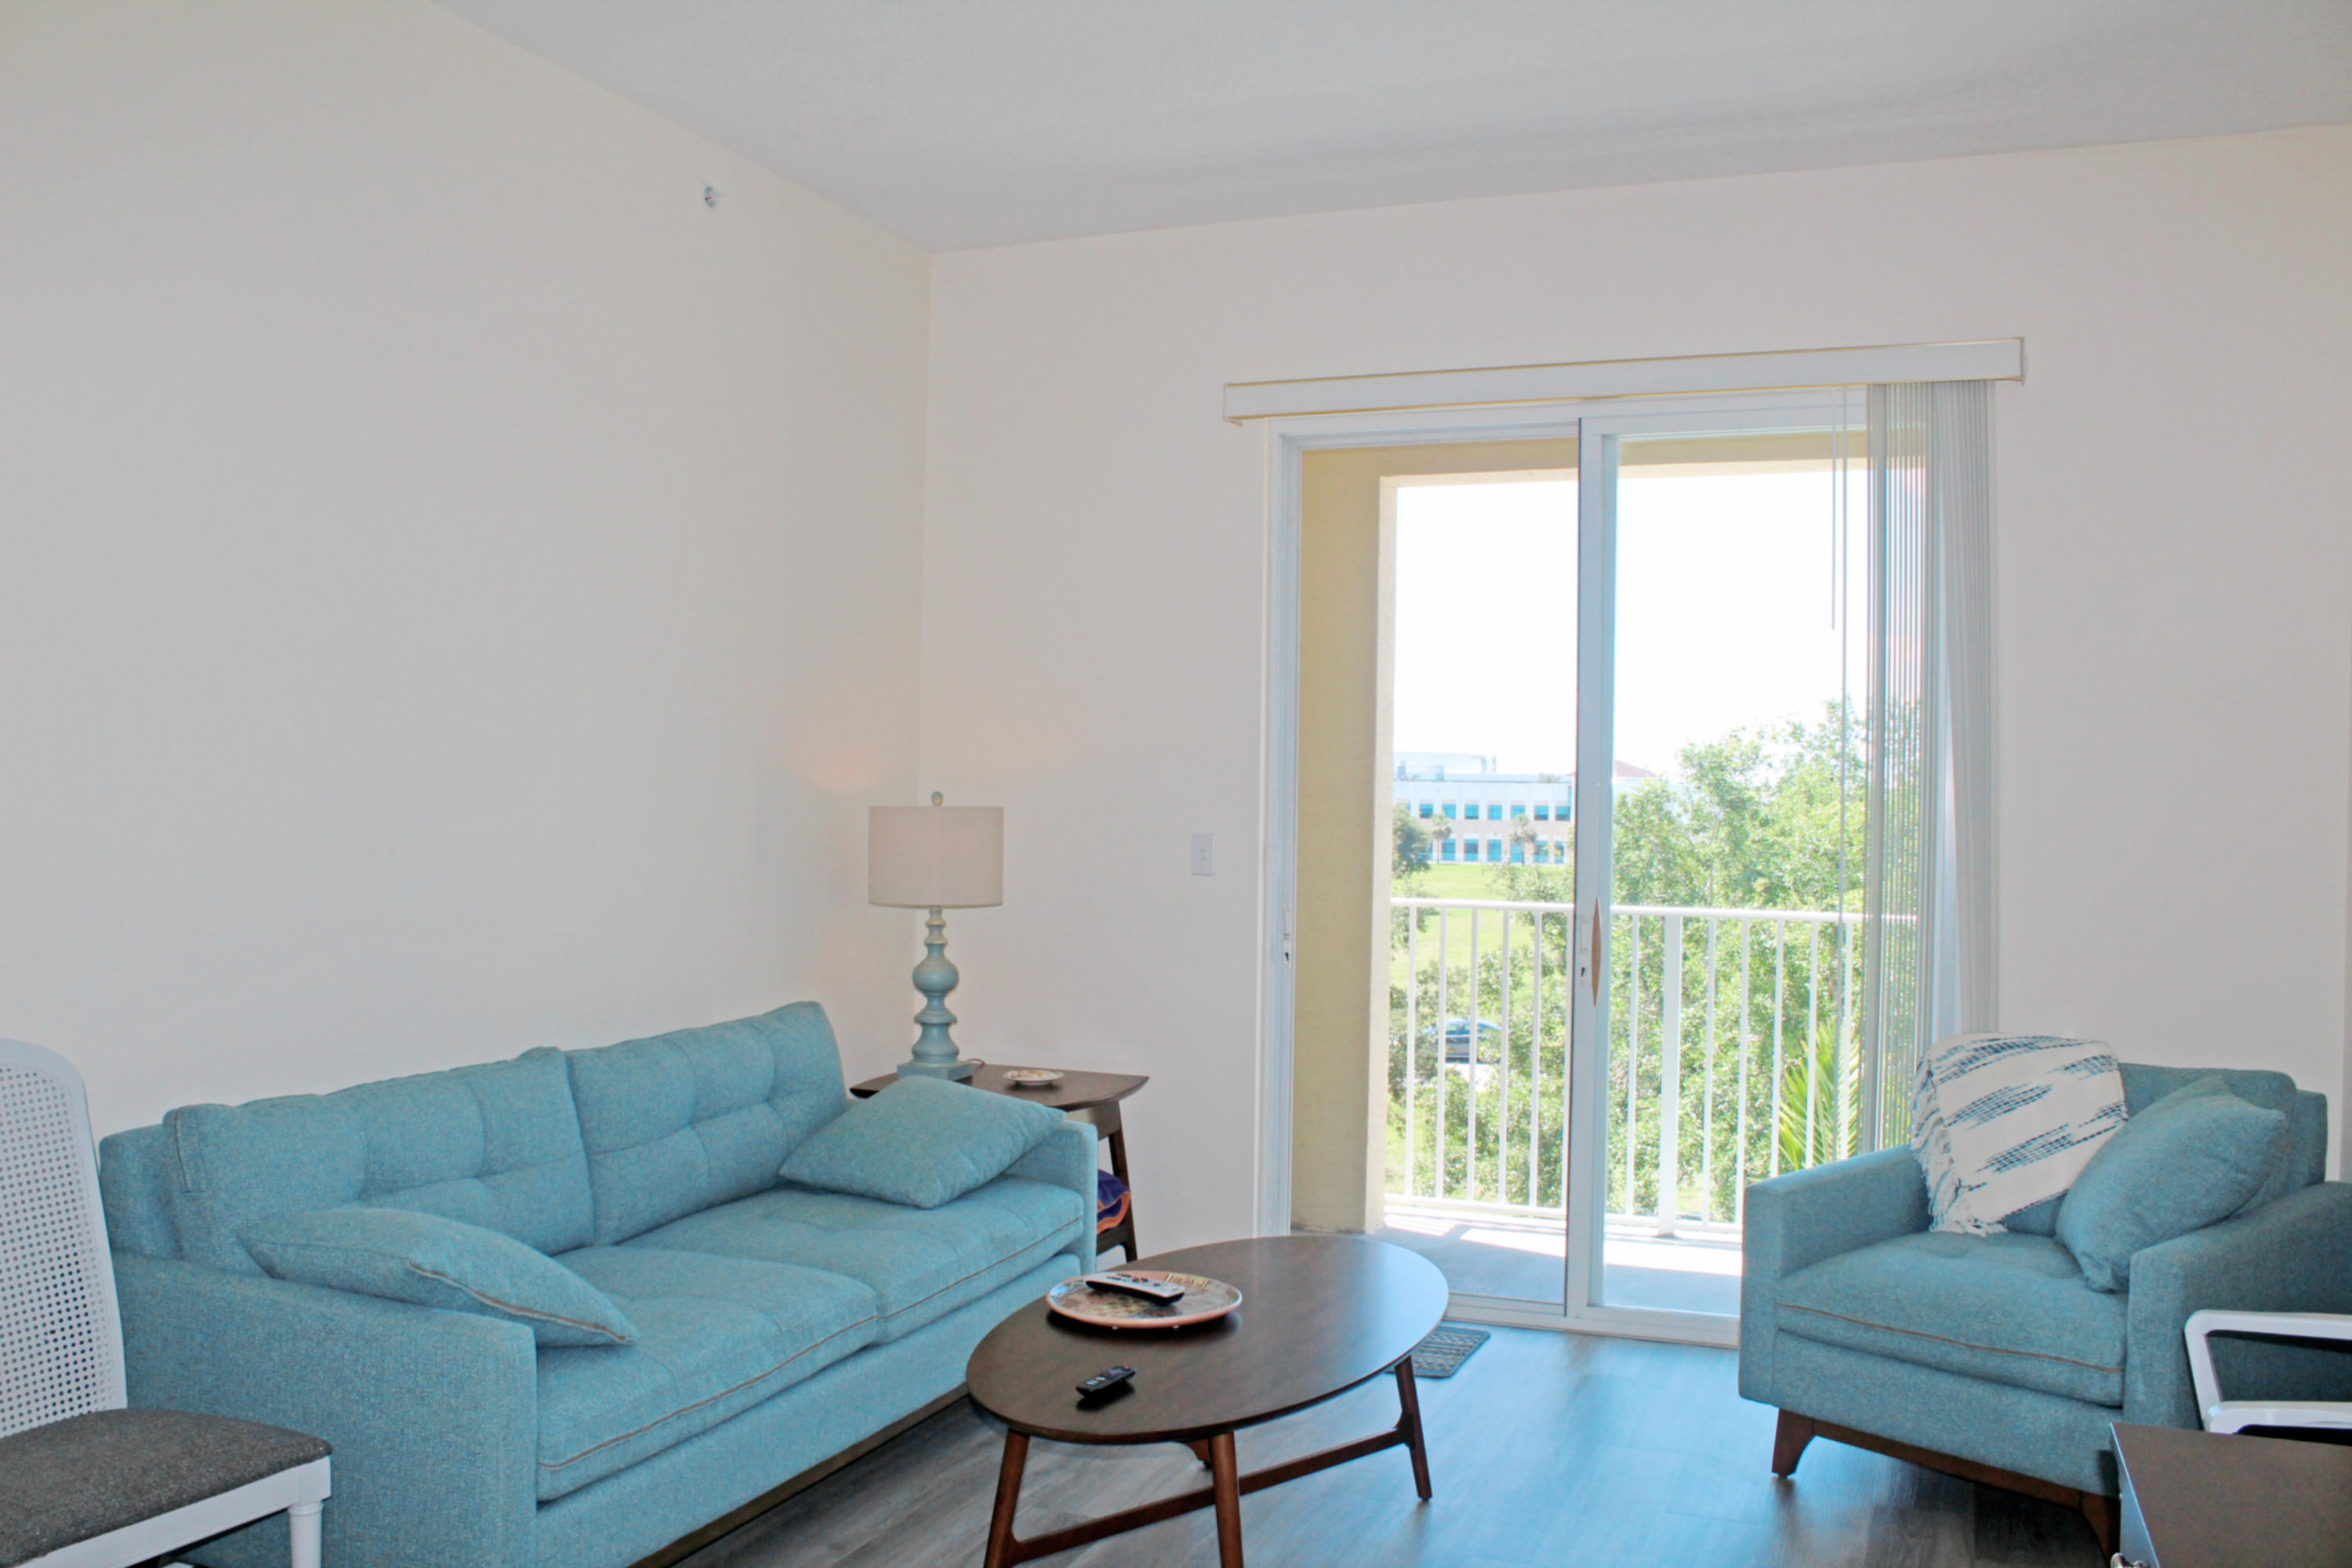 1155 Main Street 306, Jupiter, Florida 33458, 2 Bedrooms Bedrooms, ,2 BathroomsBathrooms,F,Condominium,Main,RX-10453016